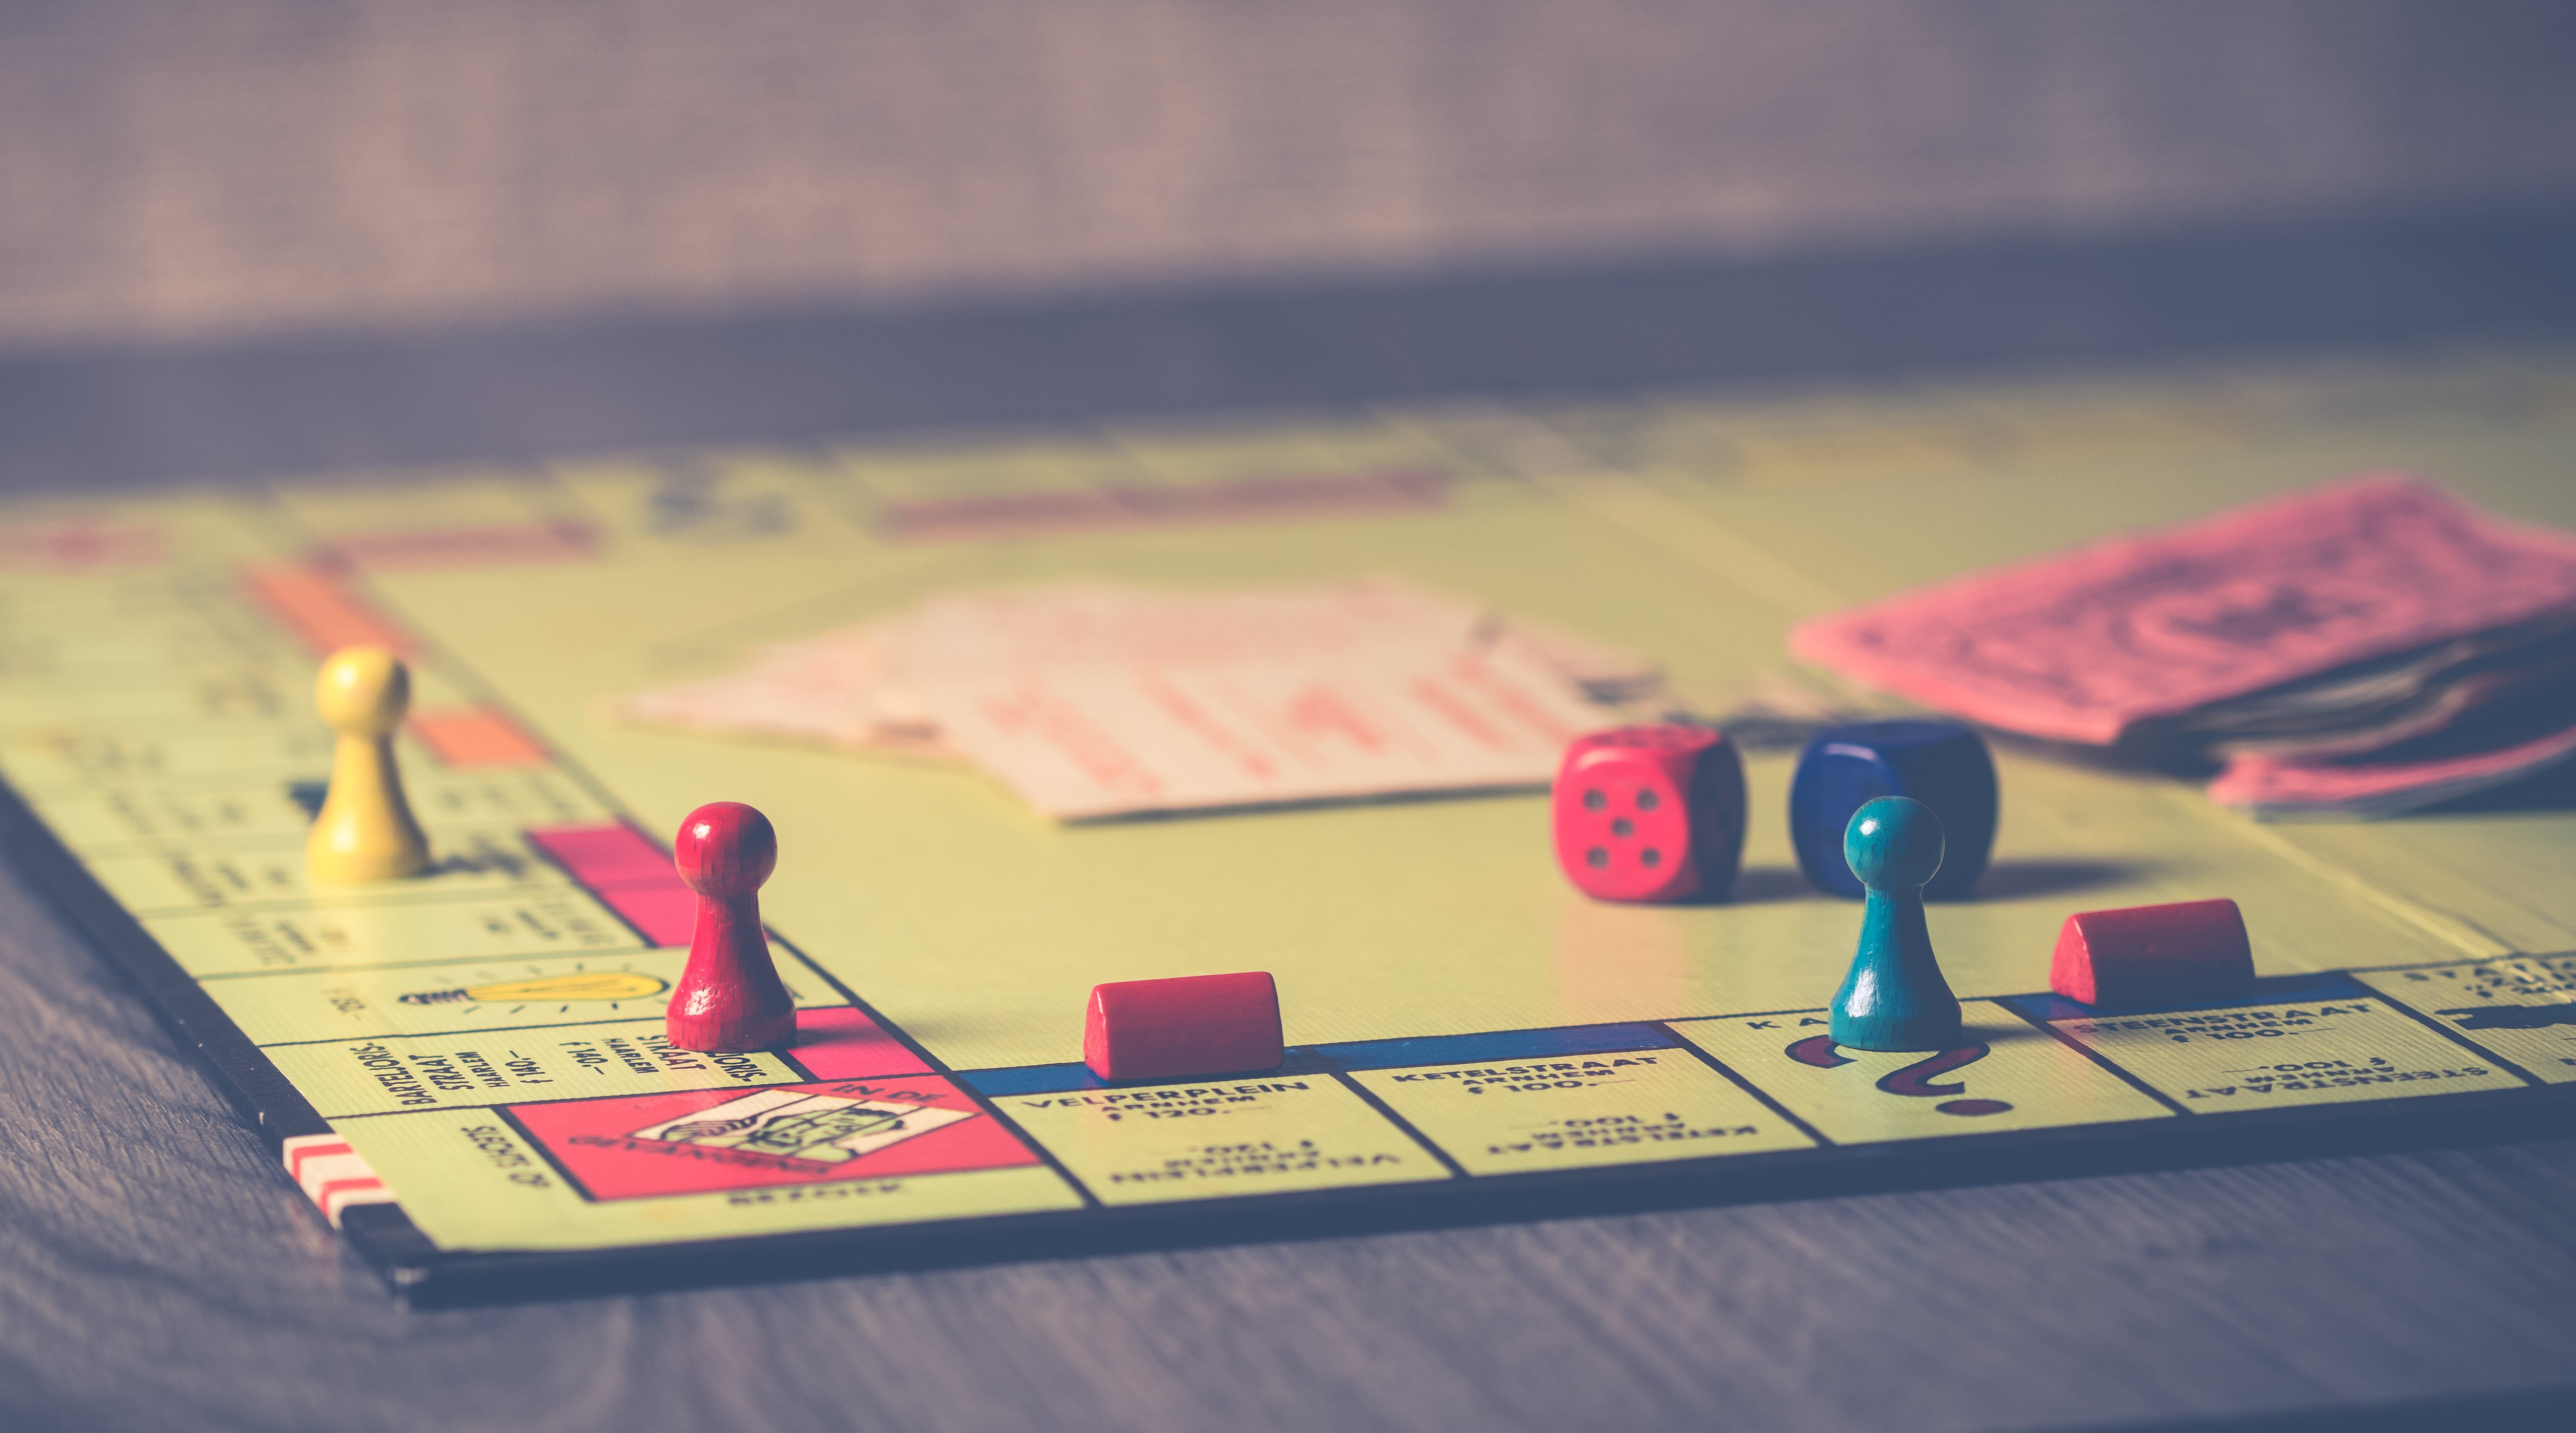 Monopoly Board Game on Brown Wooden Tabletop · Free Stock ...